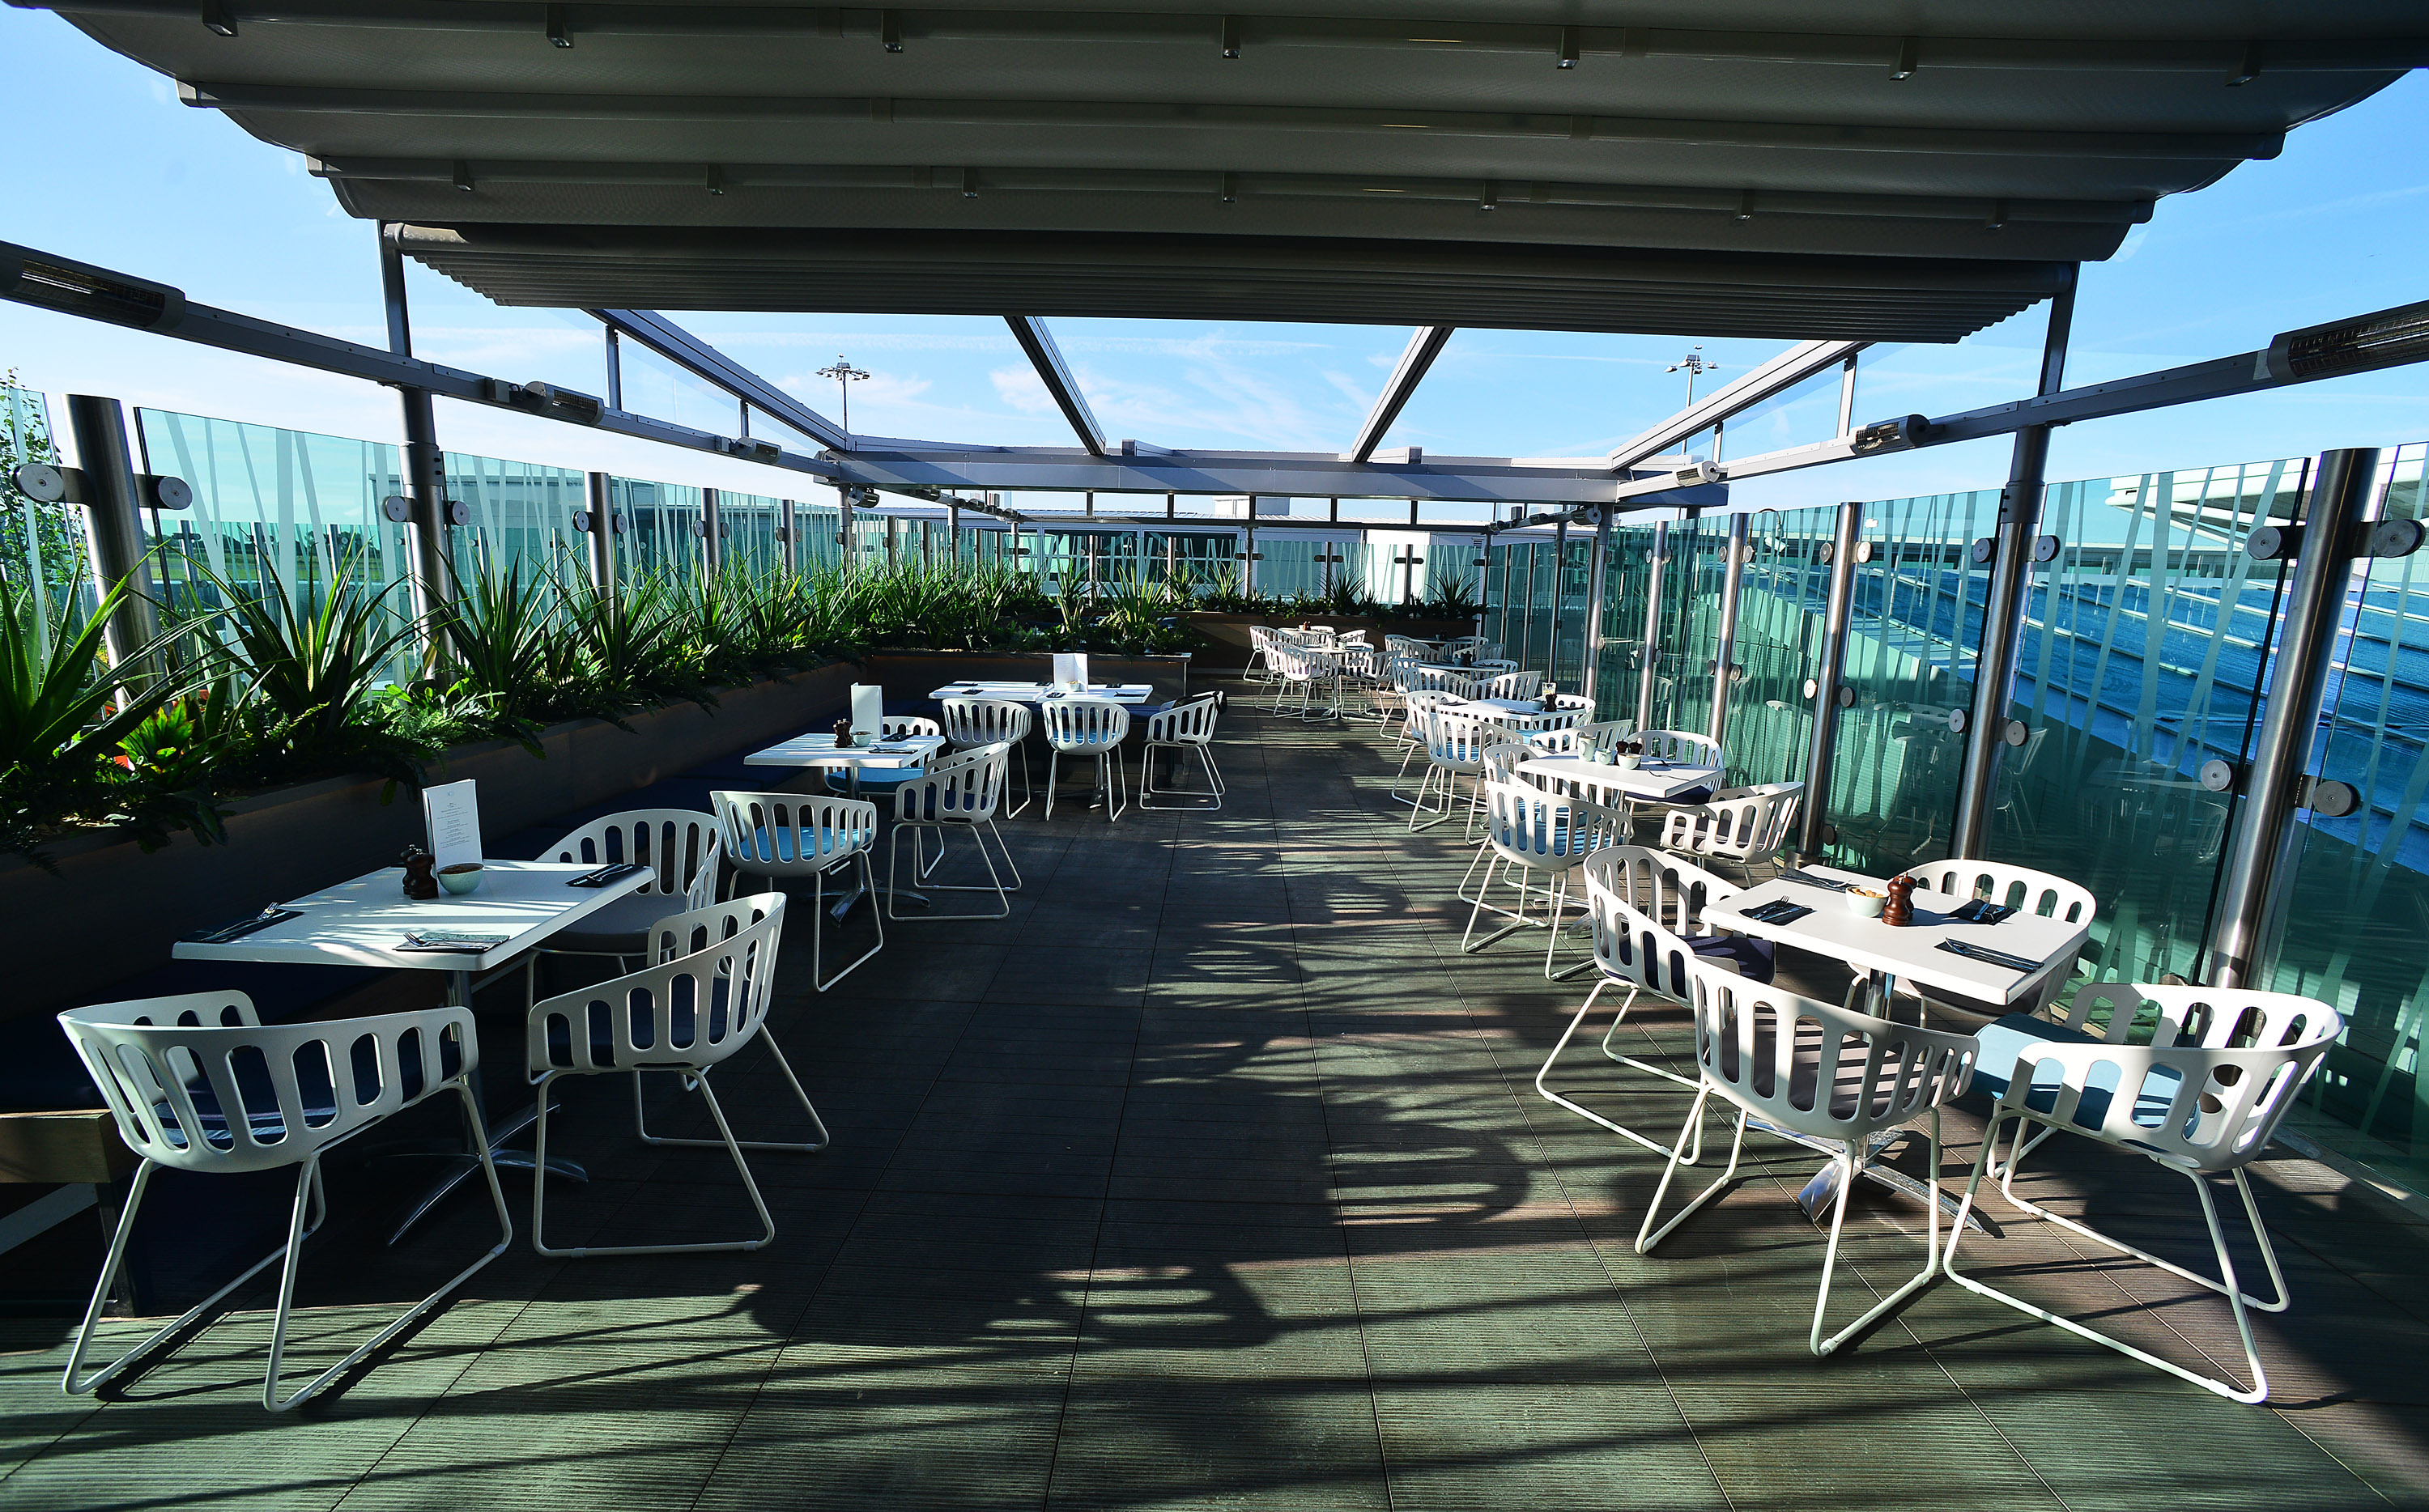 New Departure Lounge And Terrace Opened At Bristol Airport As Its